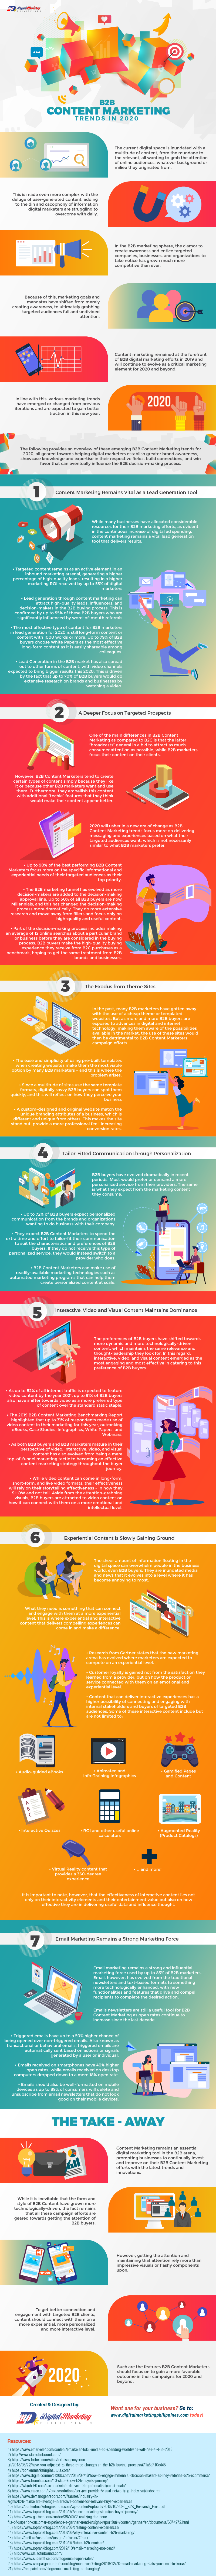 B2B Content Marketing Trends in 2020 (Infographic)